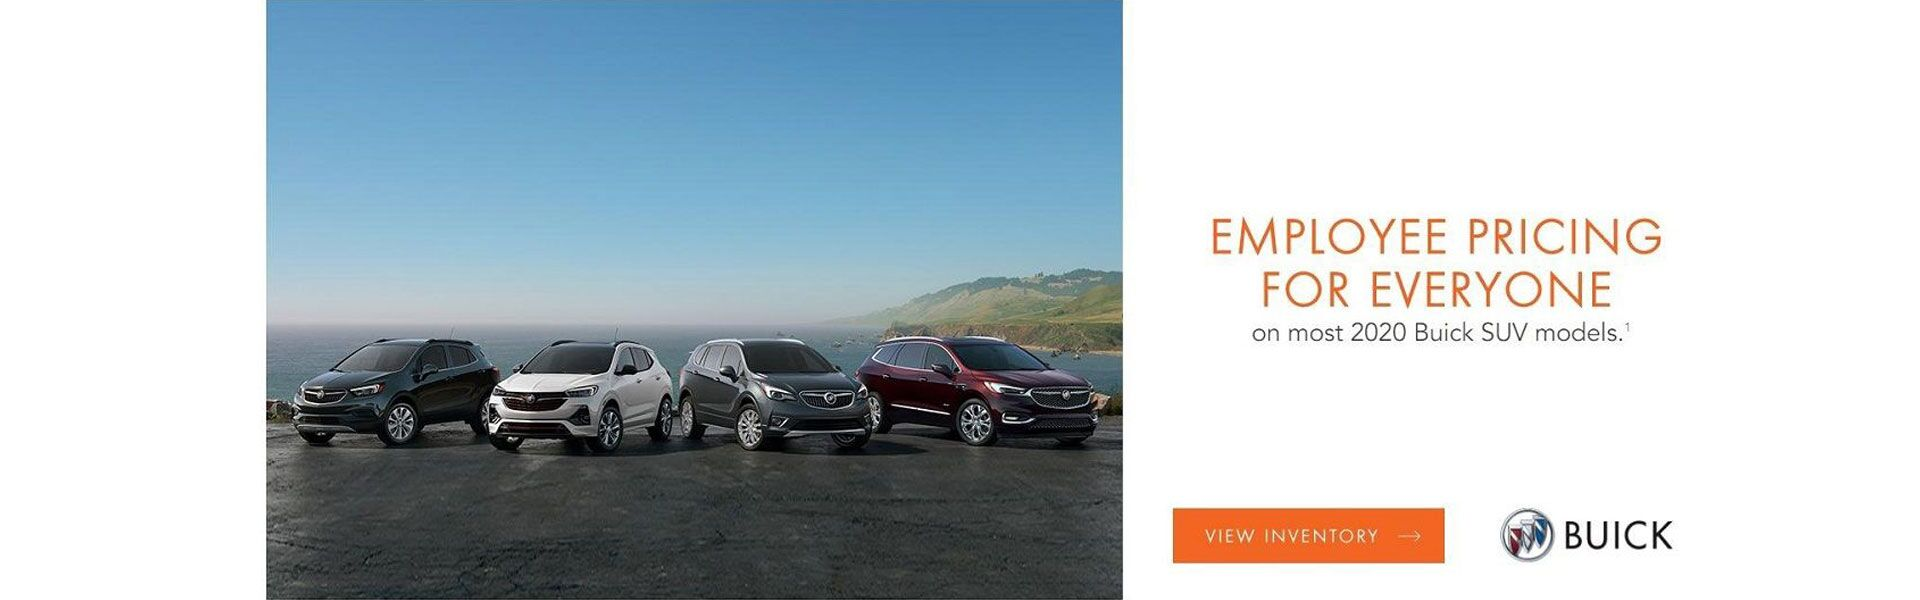 Buick Employee Pricing Farmington